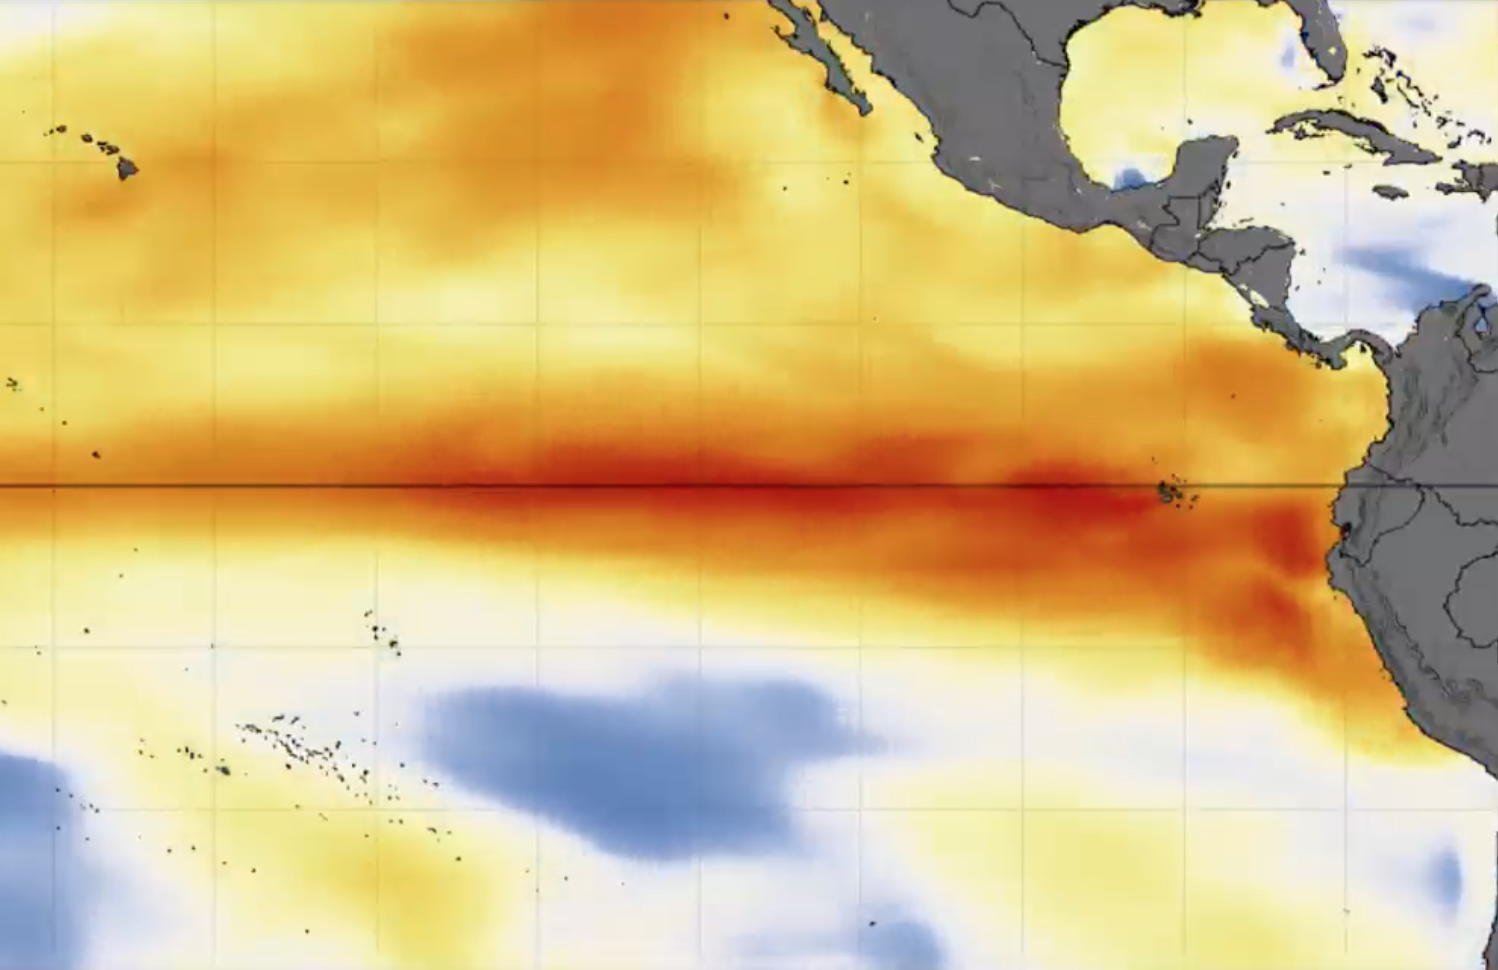 Earth Pacific Ocean Mapped By Sea Surface Temerature Data